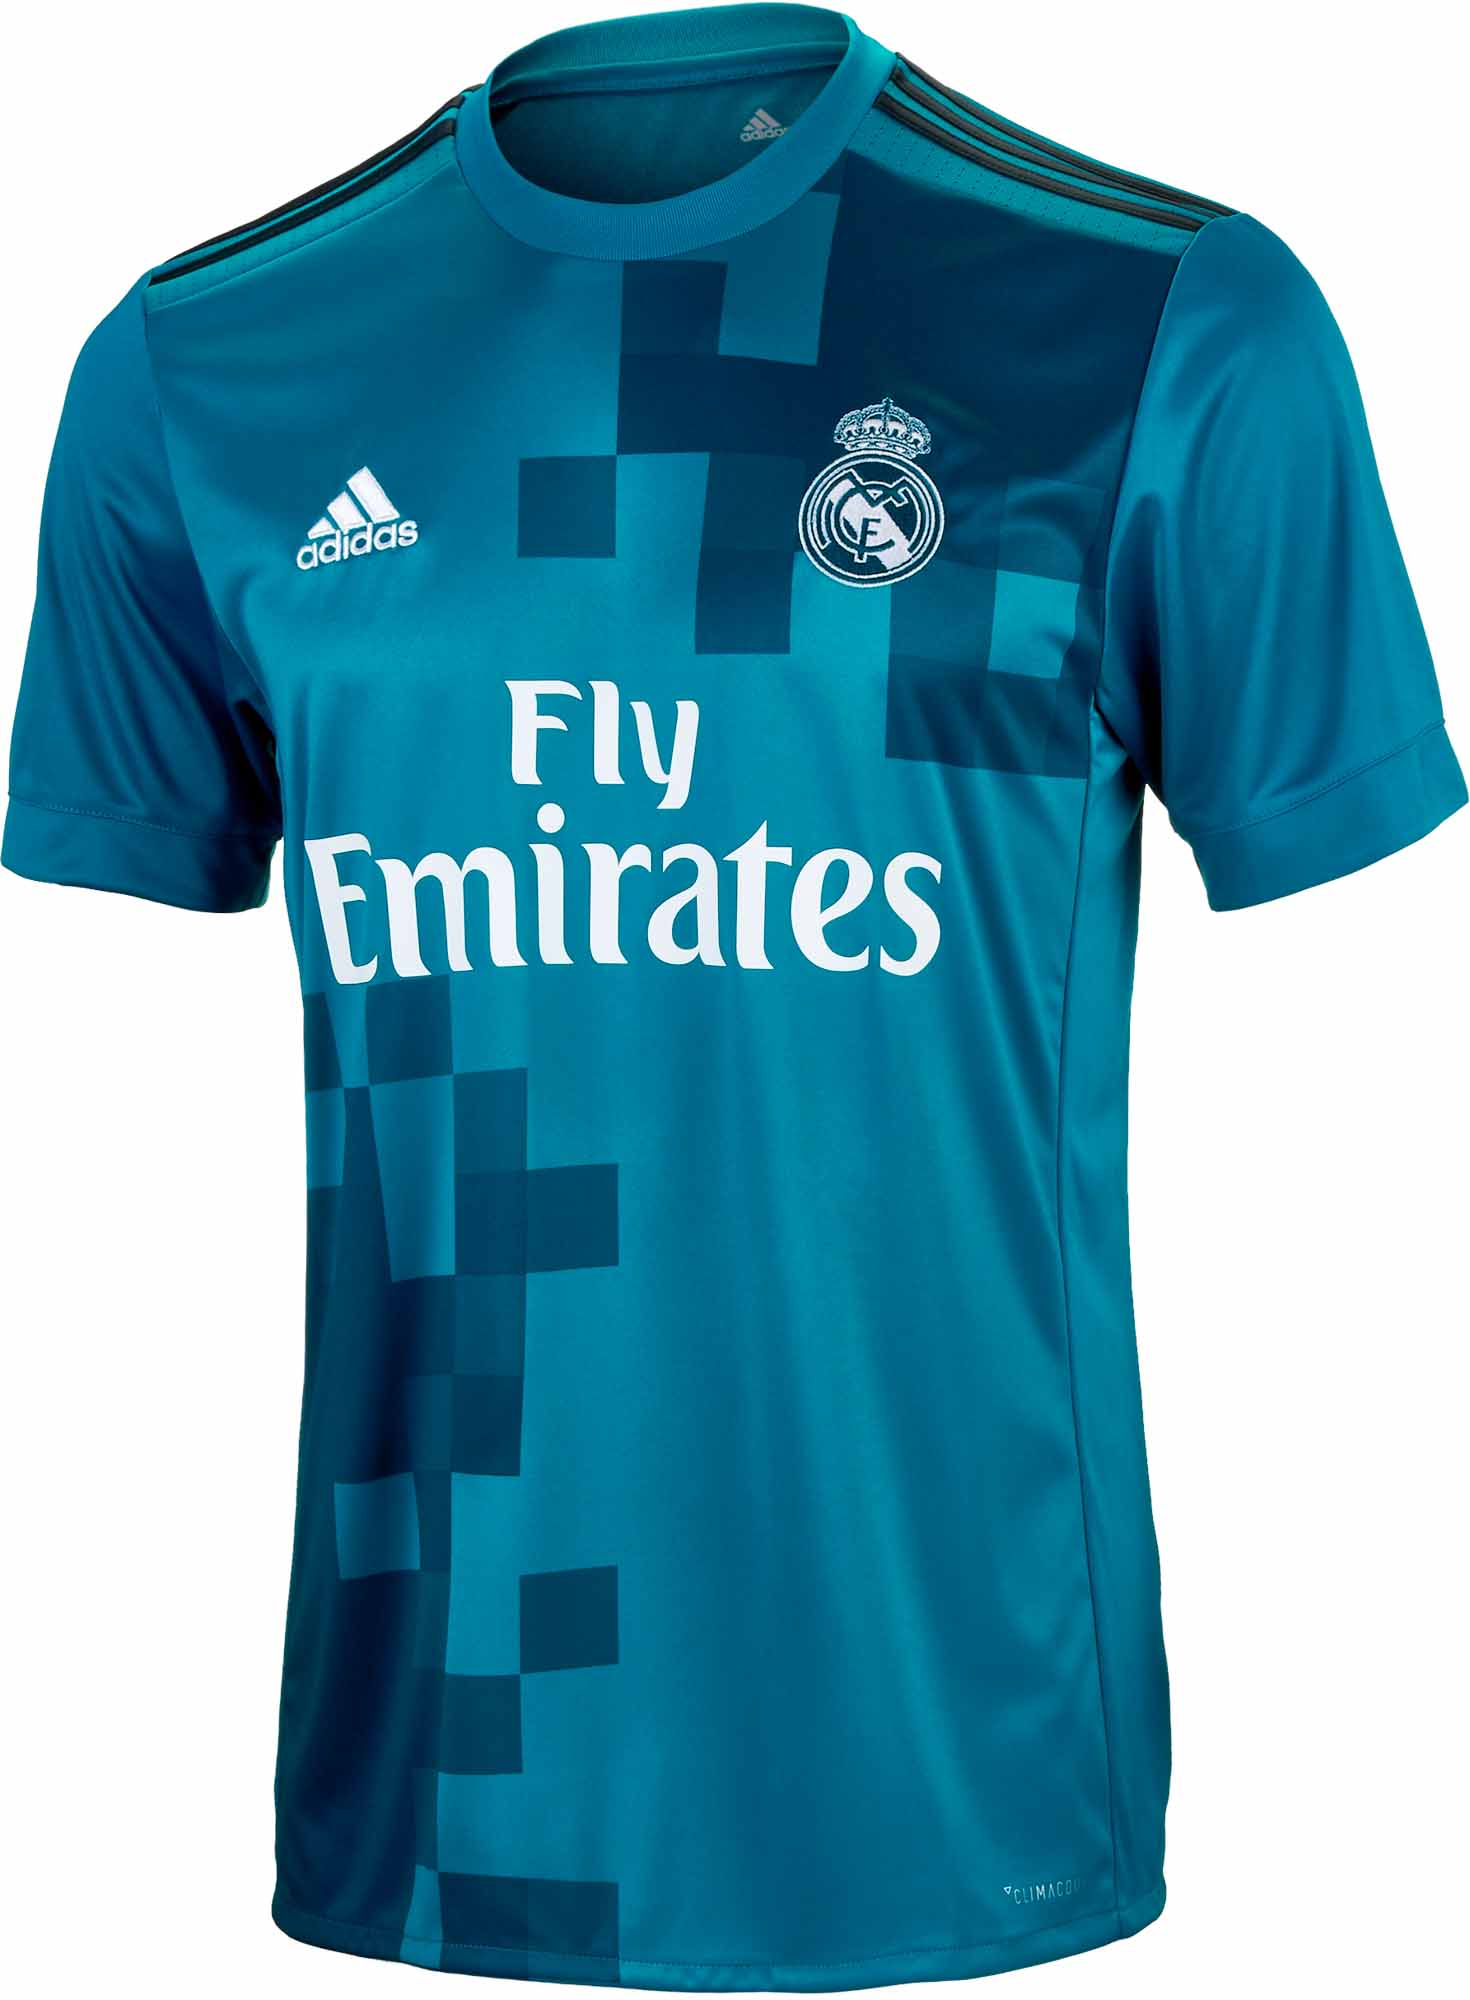 cheap for discount 5eff3 f6d0f Madrid 3rd Ns Jersey Adidas 2017-18 Real permanent.modatrent.com